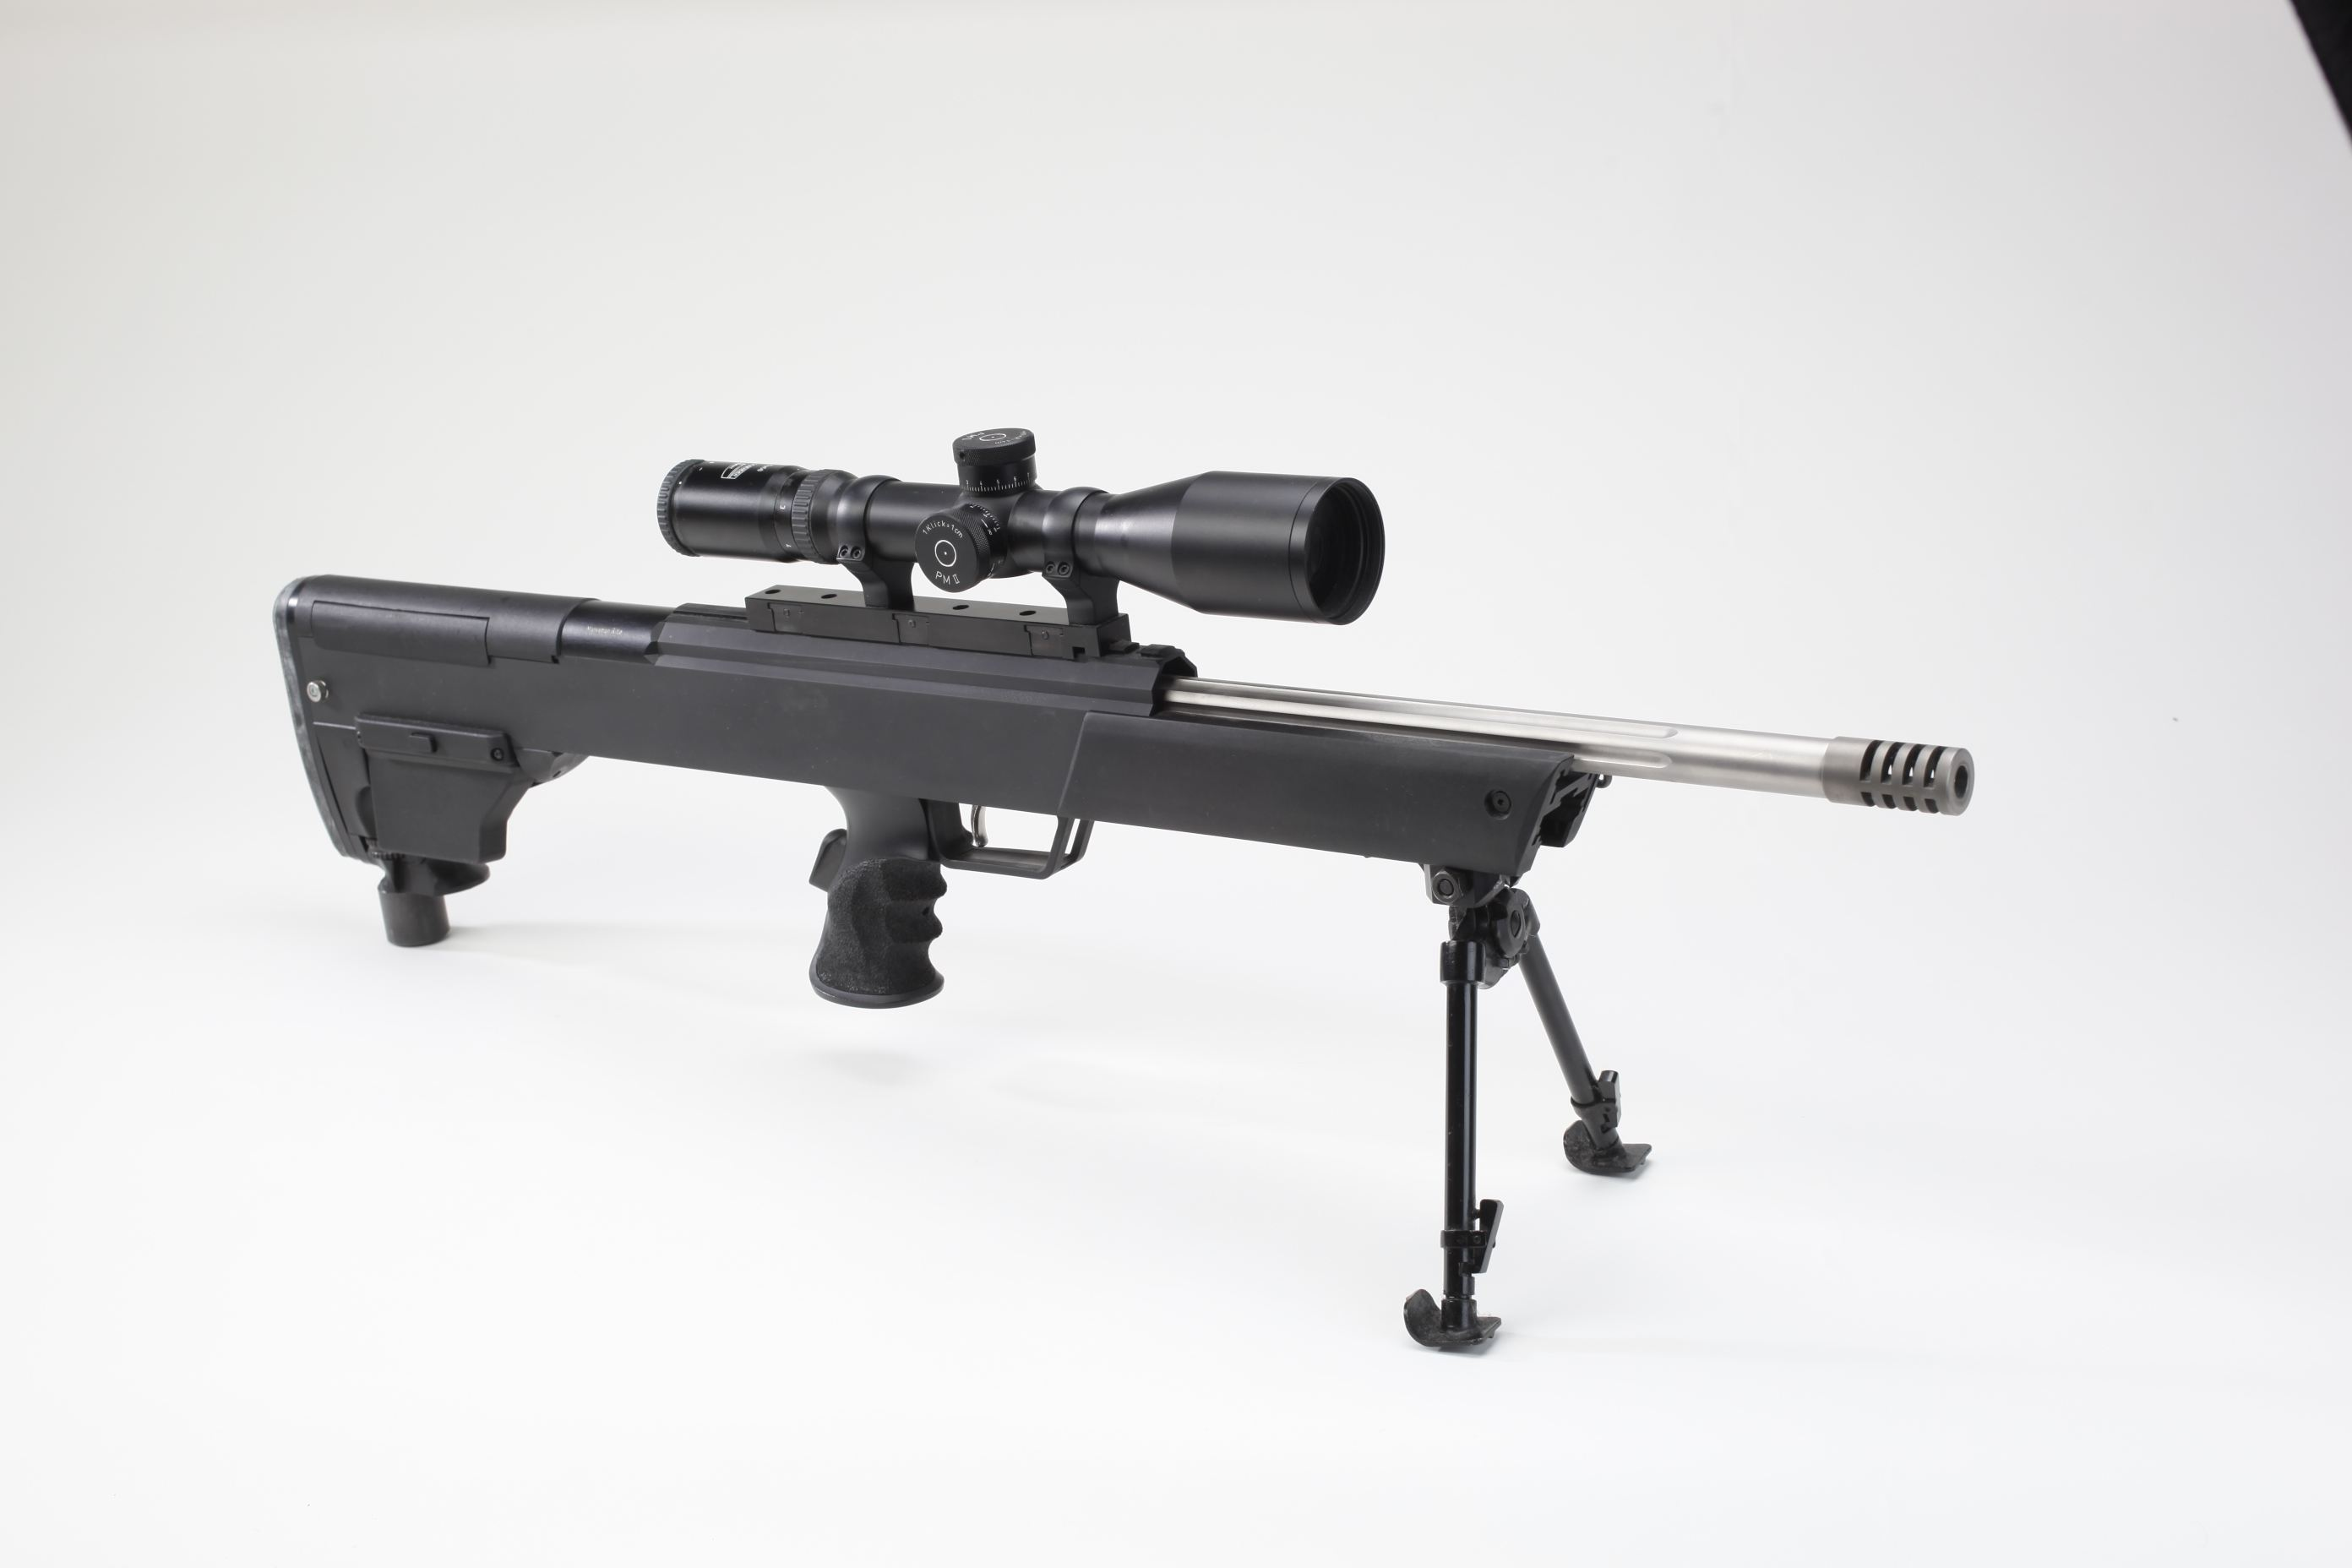 Sommer & Ockenfuss GmbH Marksman Tactical Rifle